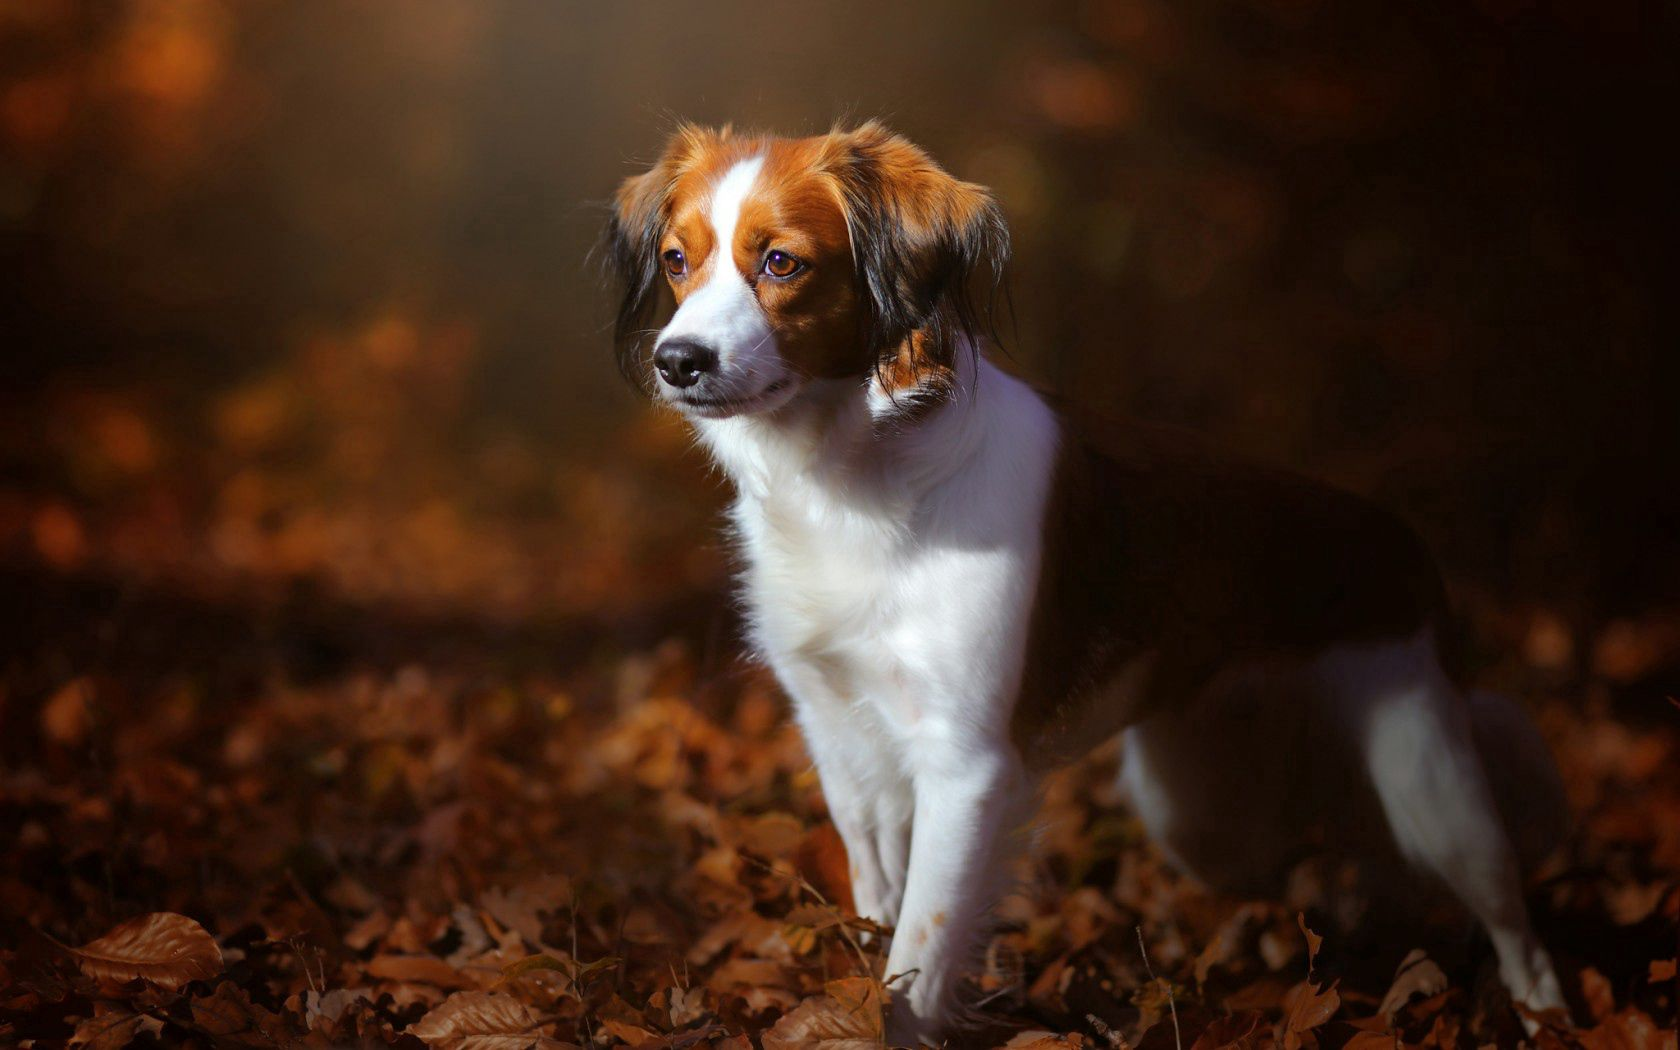 109466 Screensavers and Wallpapers Puppy for phone. Download Animals, Autumn, Dog, Puppy, Foliage pictures for free